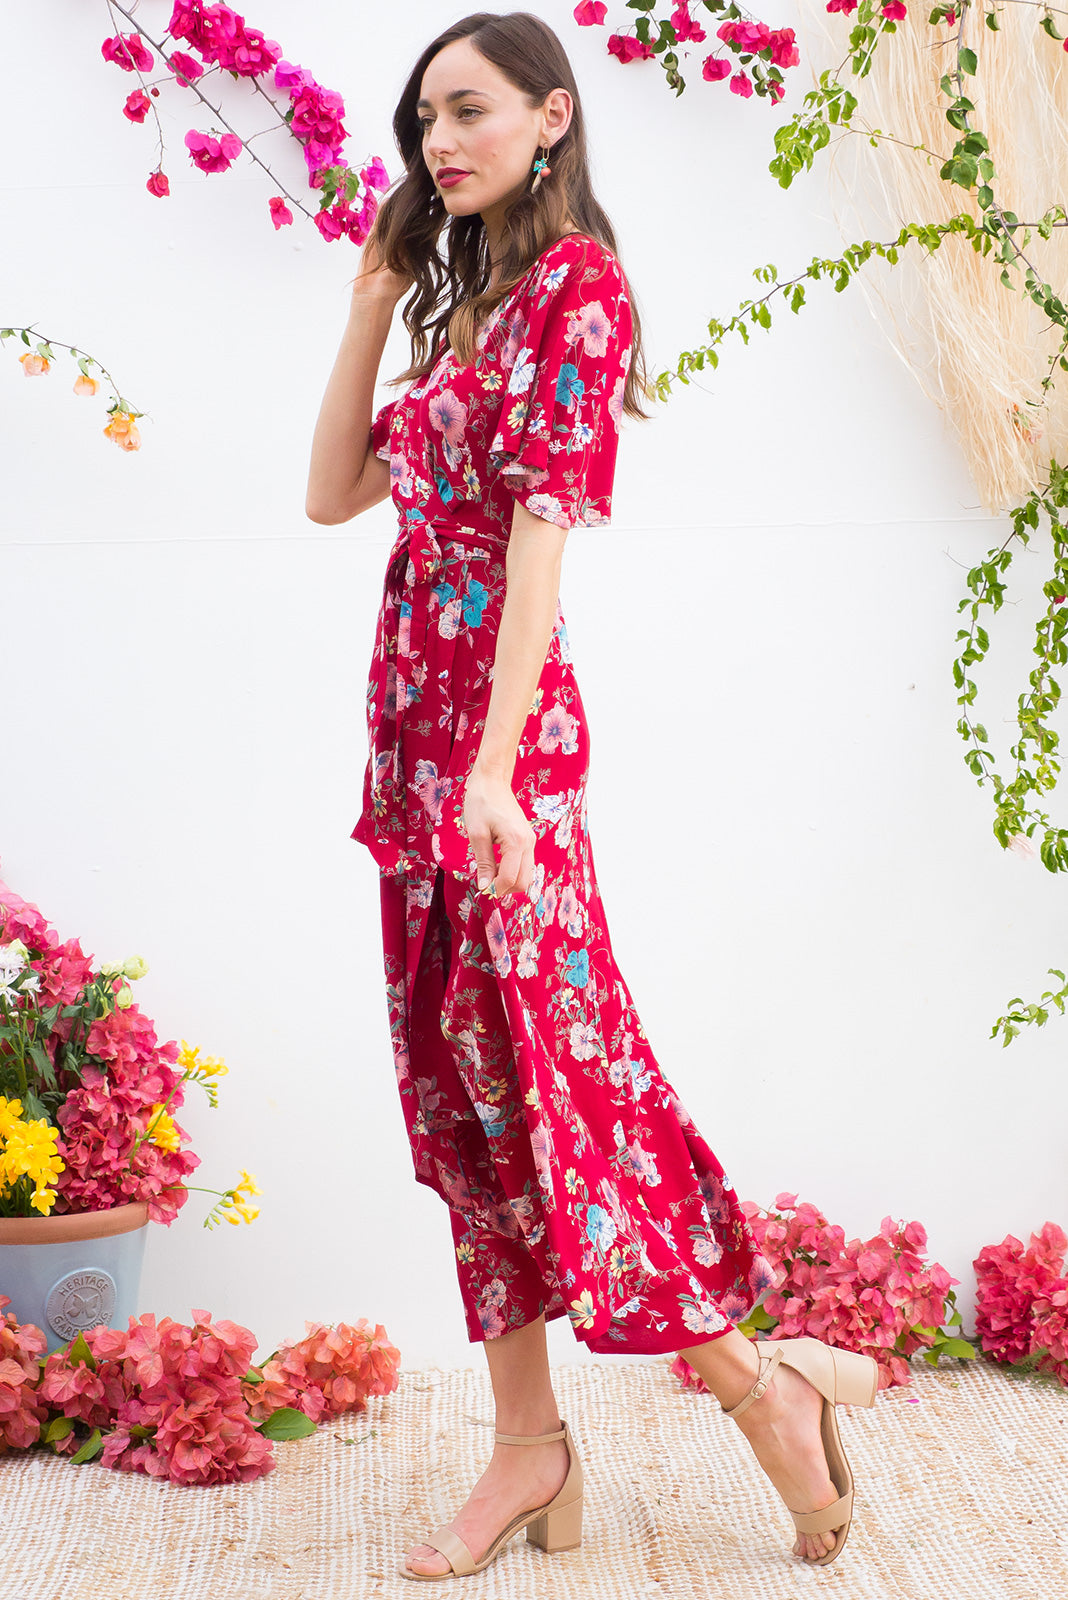 Petal Sangria Red Maxi Wrap Dress features a bold red base with a floral bohemian print on a soft woven rayon and has a petal sleeve and wrap around shape